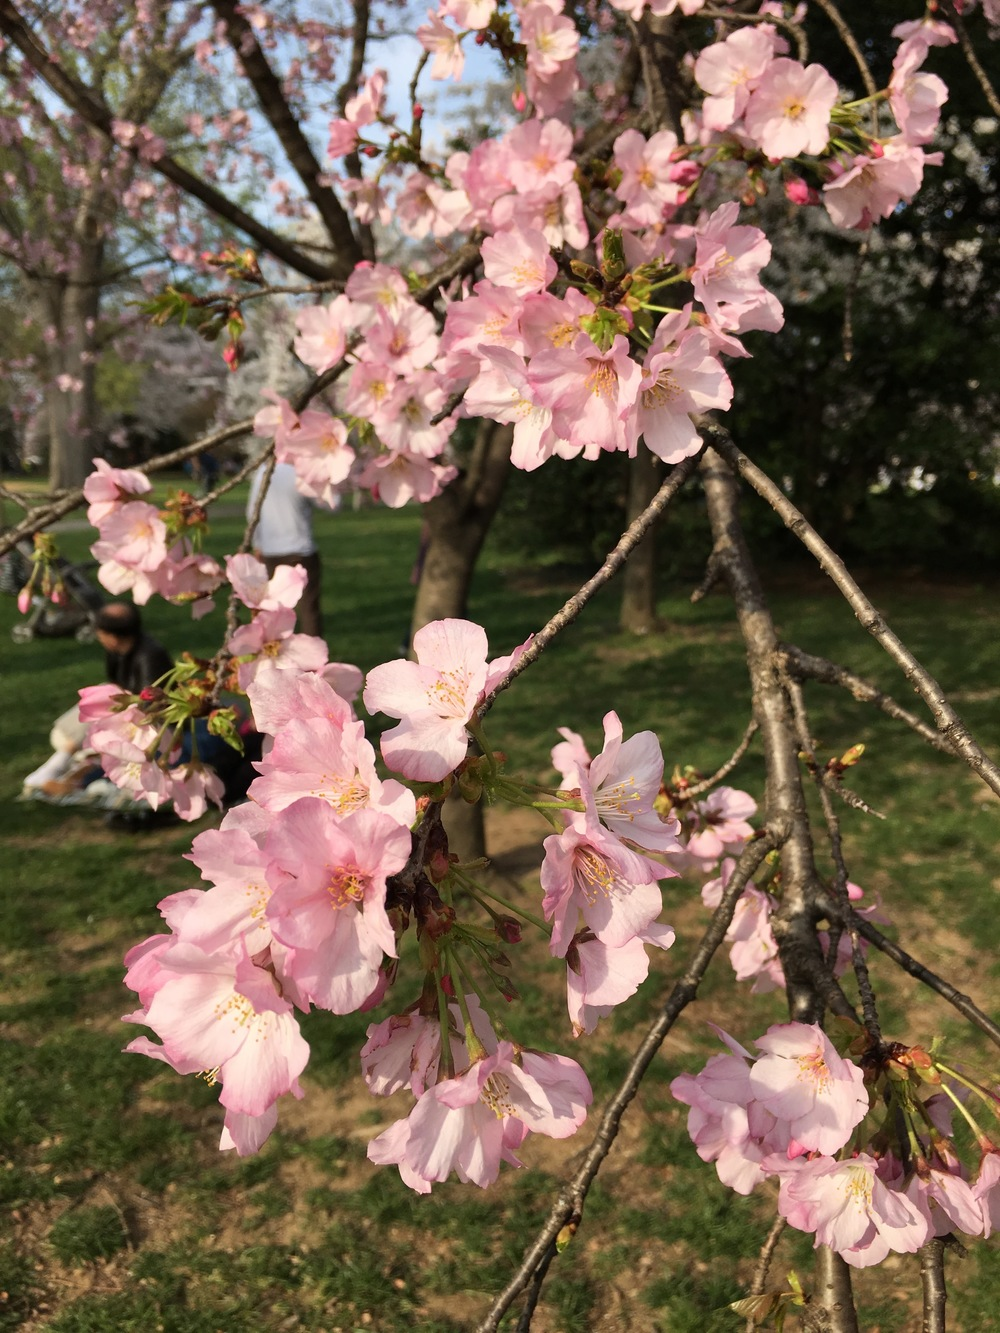 These were the pinkest cherry blossoms that we saw. Almost all the others were a fluffy white, as you'll see in the pictures below.